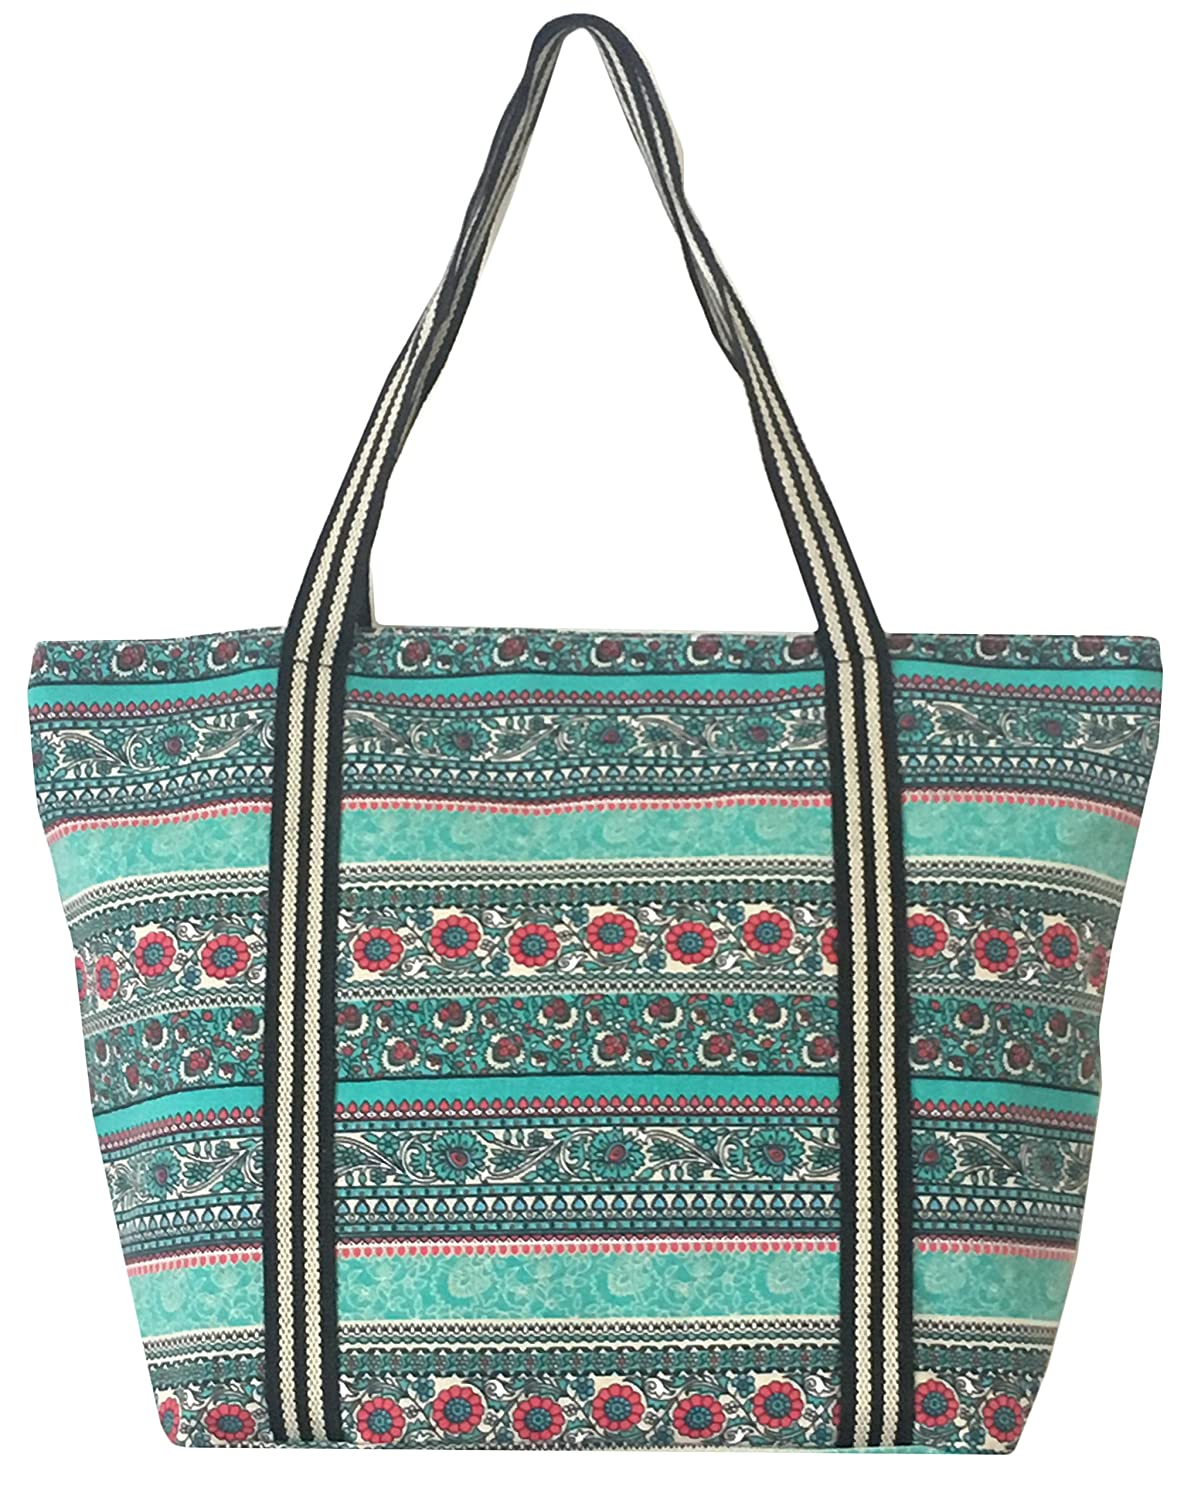 798ef82173 Amazon.com  Large Utility Canvas and Nylon Travel Tote Bag Beach Bag For  Women and Girls (B.MINT)  Computers   Accessories